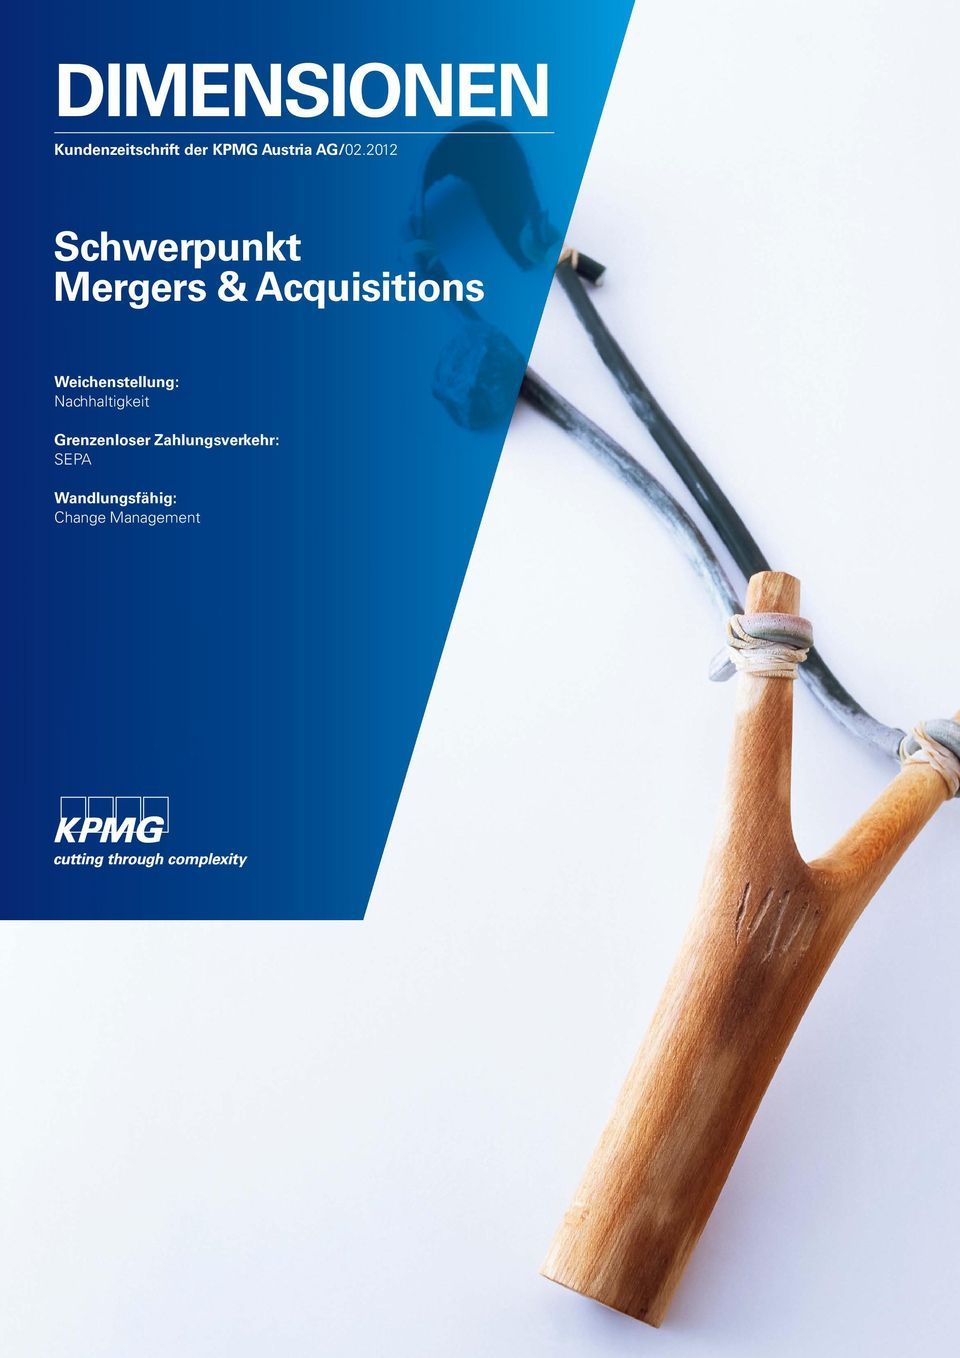 2012 Schwerpunkt Mergers & Acquisitions